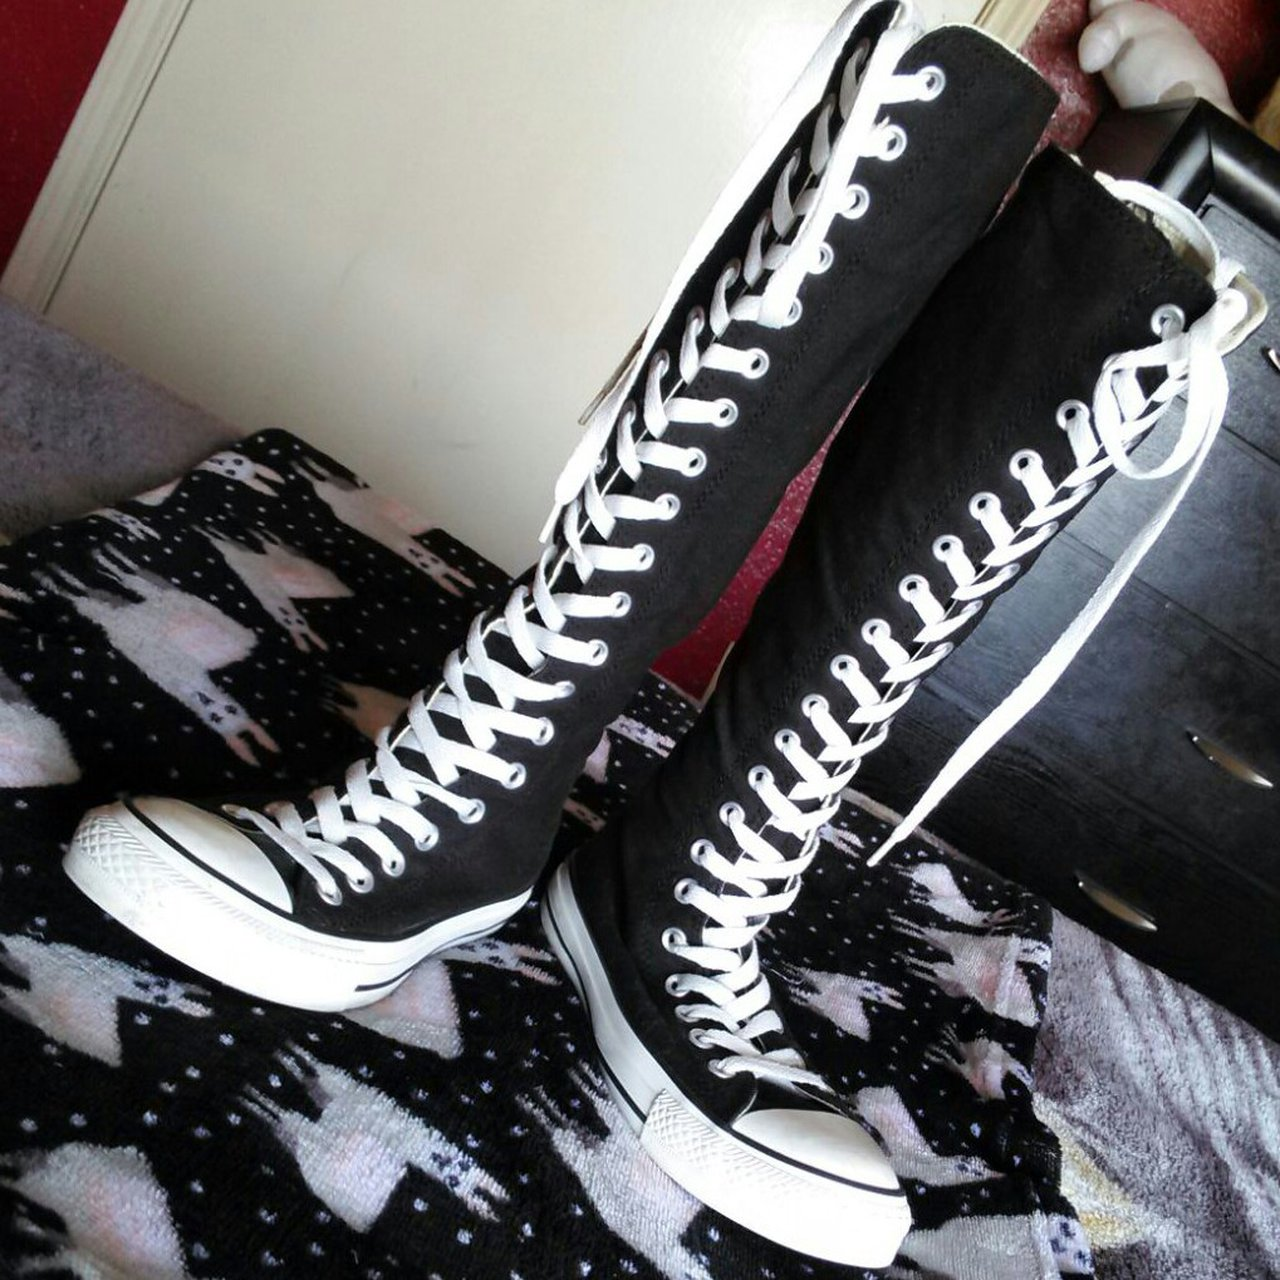 69c62ff98d2 All Black Converse Hi Top Shoes Size 4 UK. Only selling they - Depop